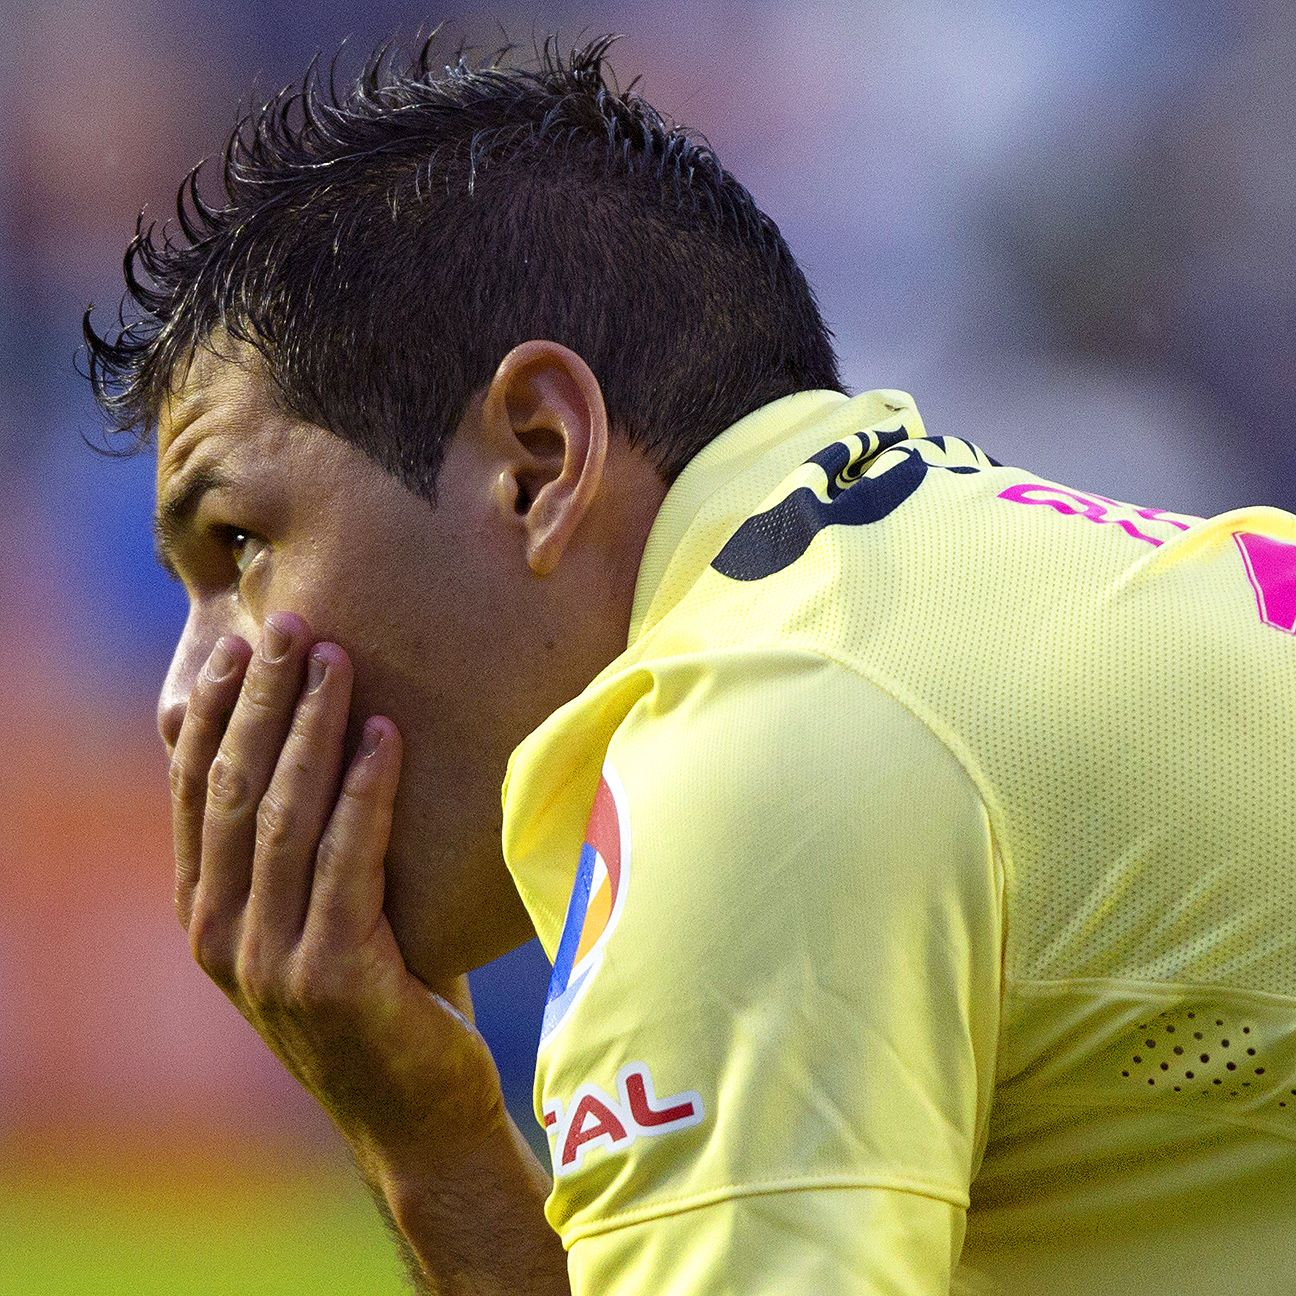 Some Club America players like Pablo Aguilar have voiced their concern over new head coach Gustavo Matosas' attacking philosophy.